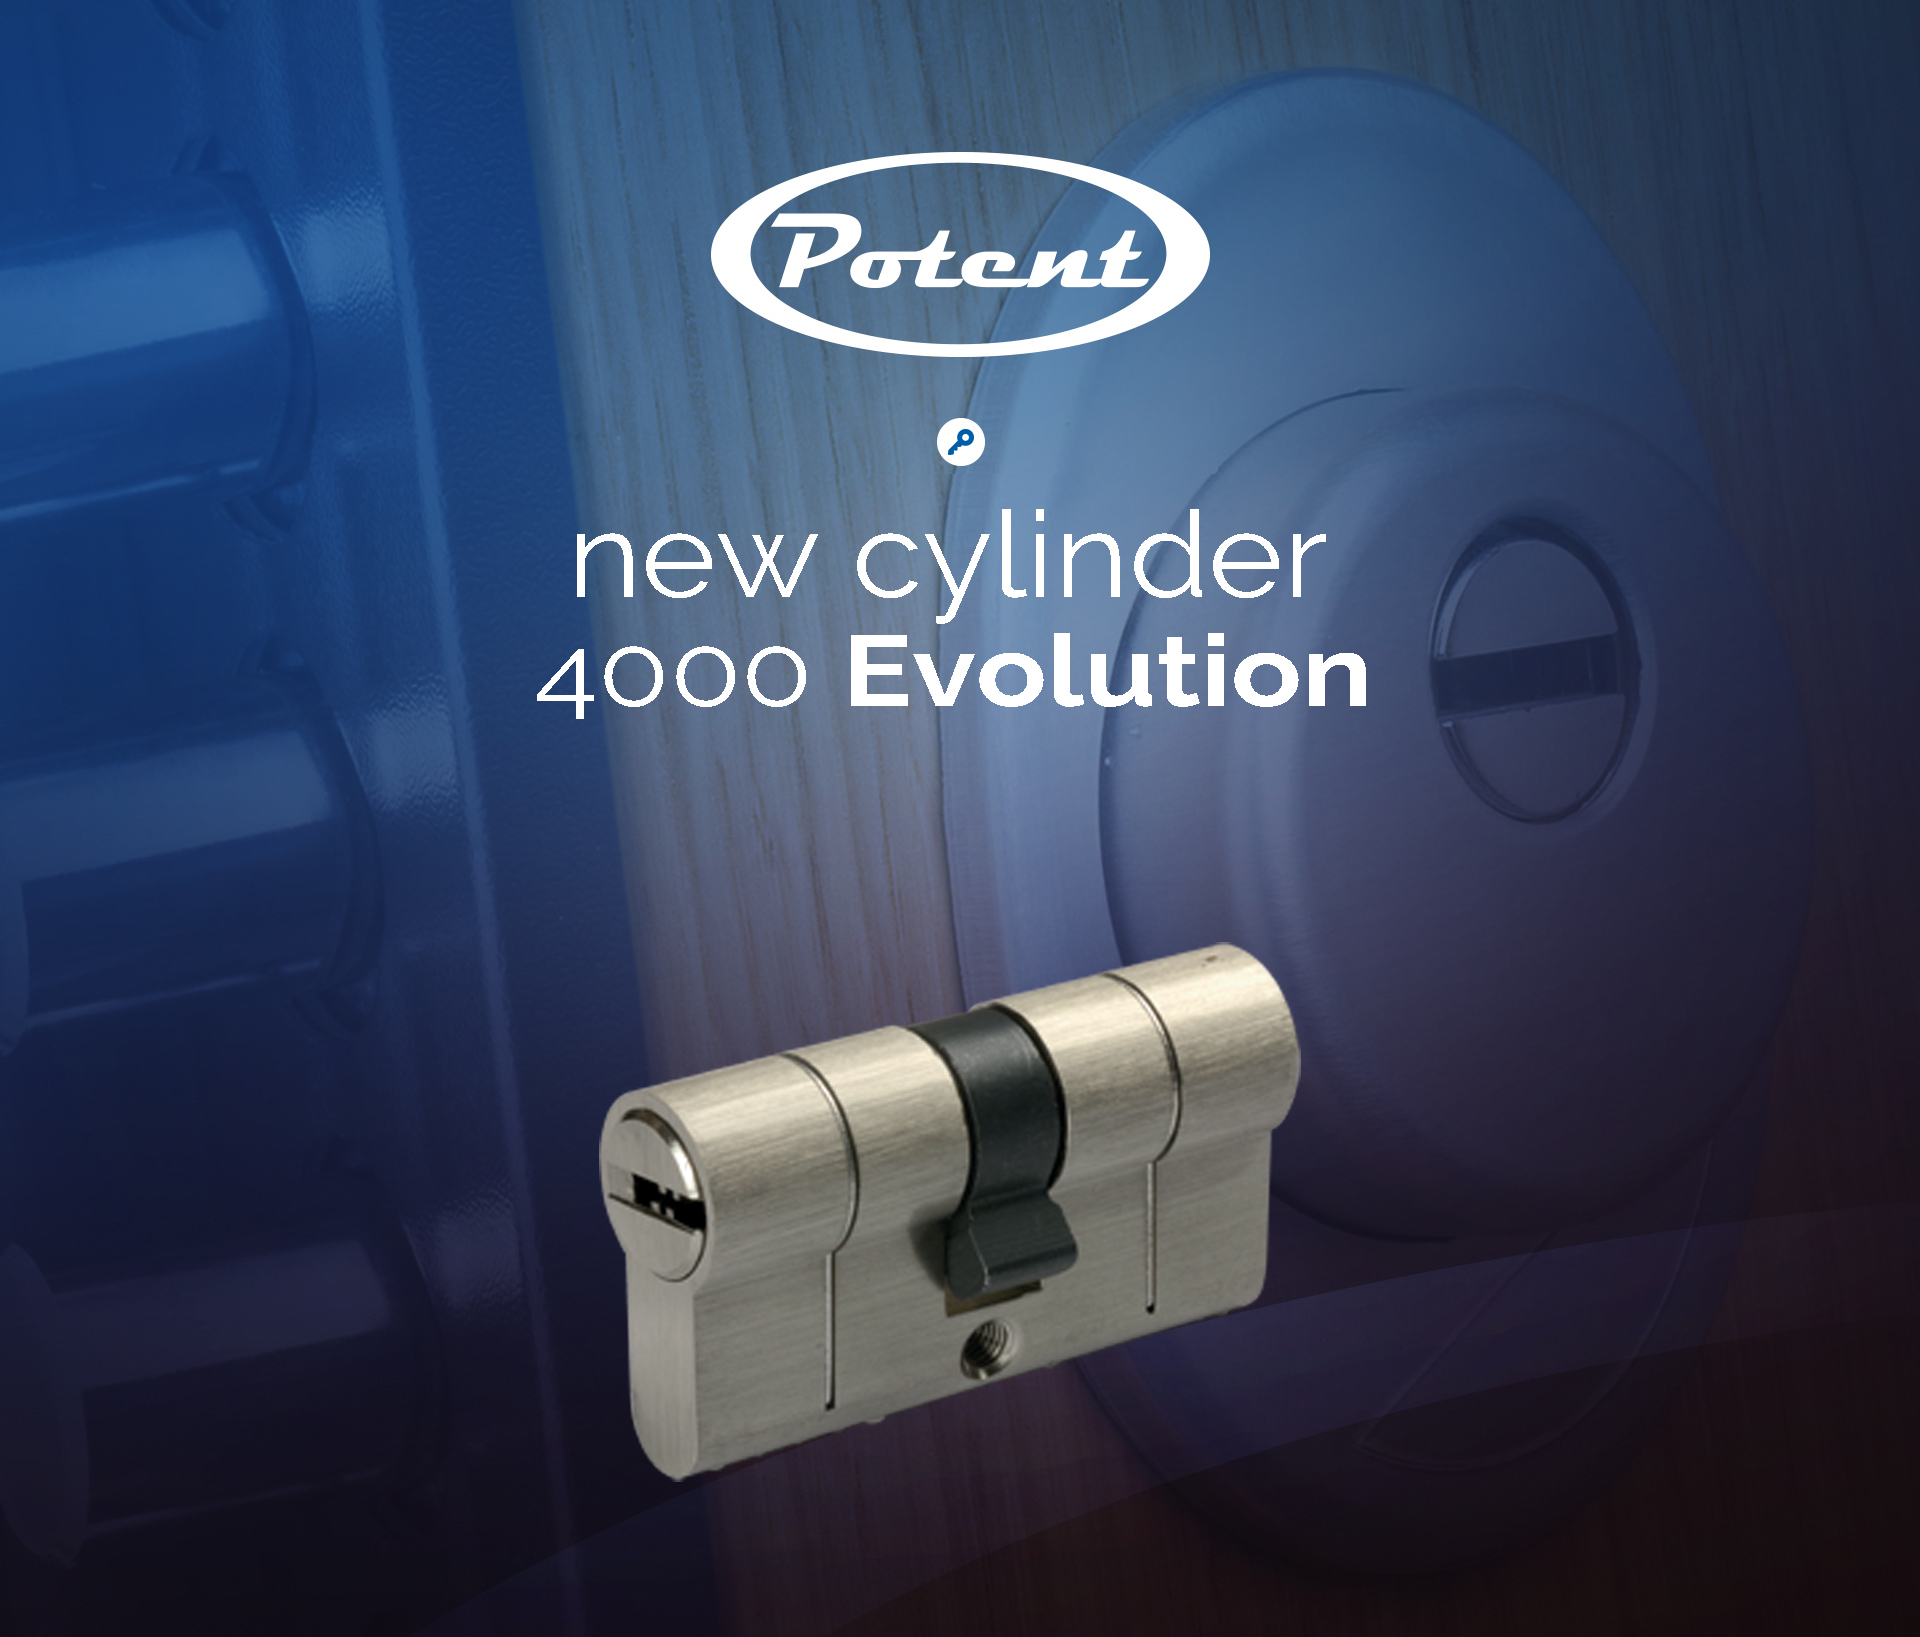 Potent new cylinder 4000 evolution